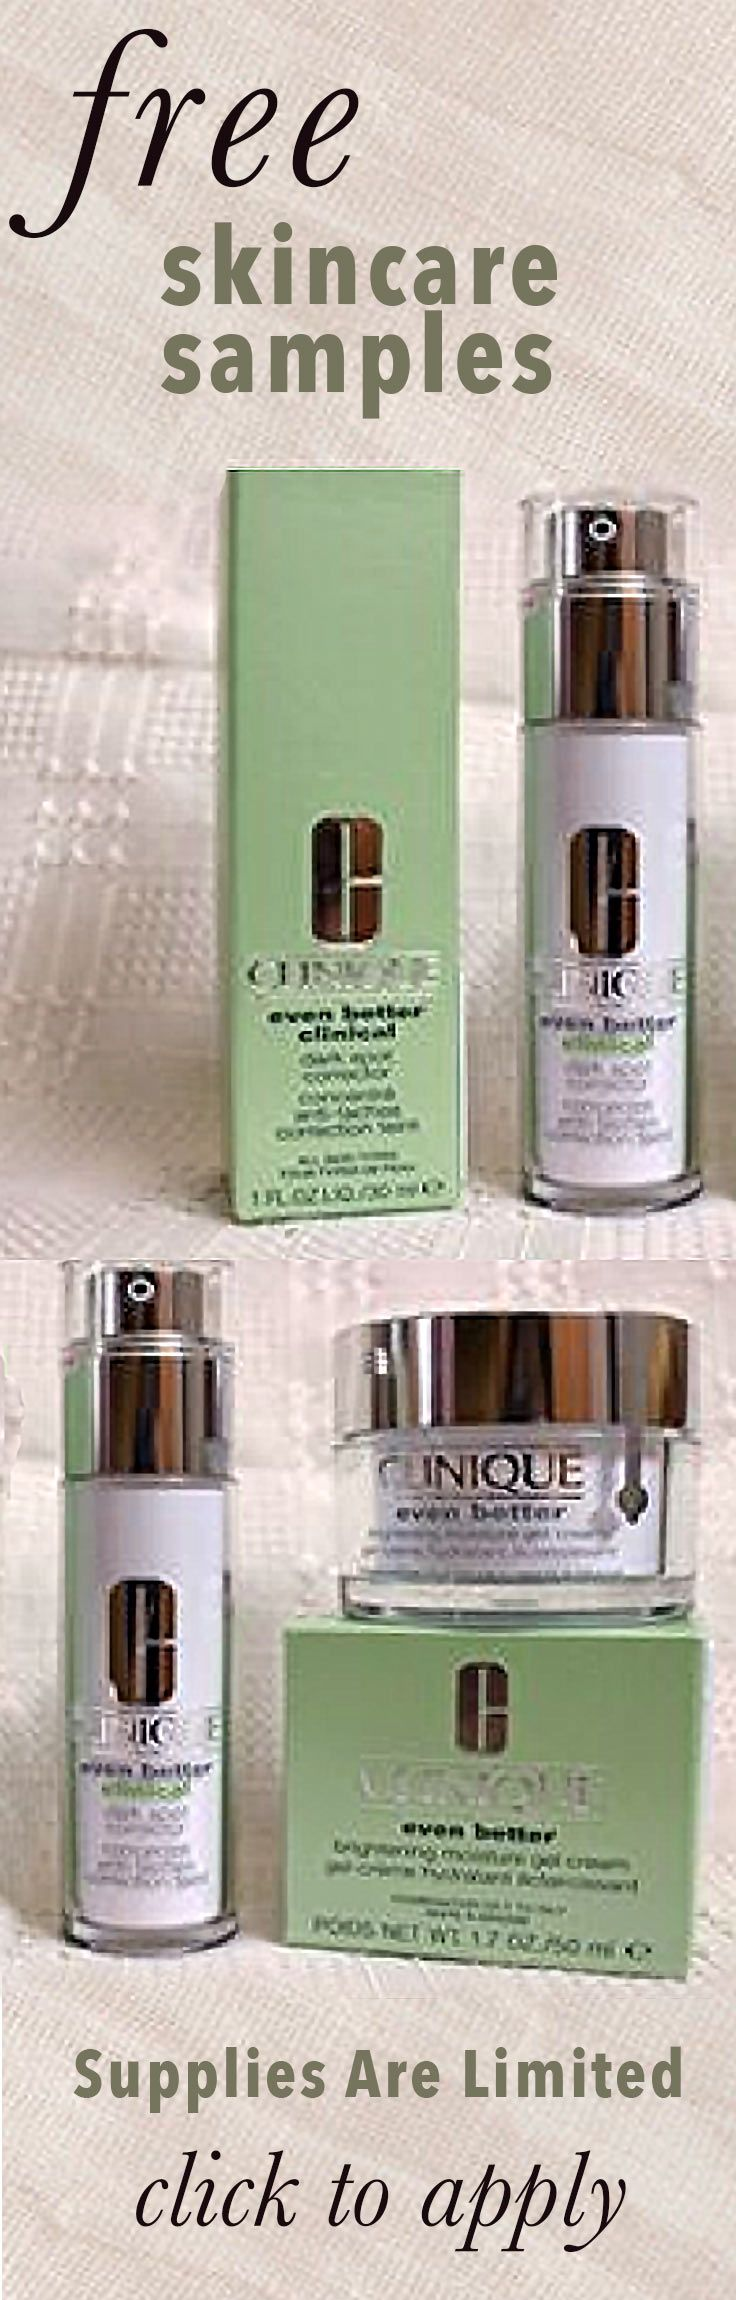 Free Skincare Samples For Top Anti Aging Wrinkle Cream Supplies Are Limited So Apply Now To Get Your Beauty Samples Top Anti Aging Products Skincare Samples